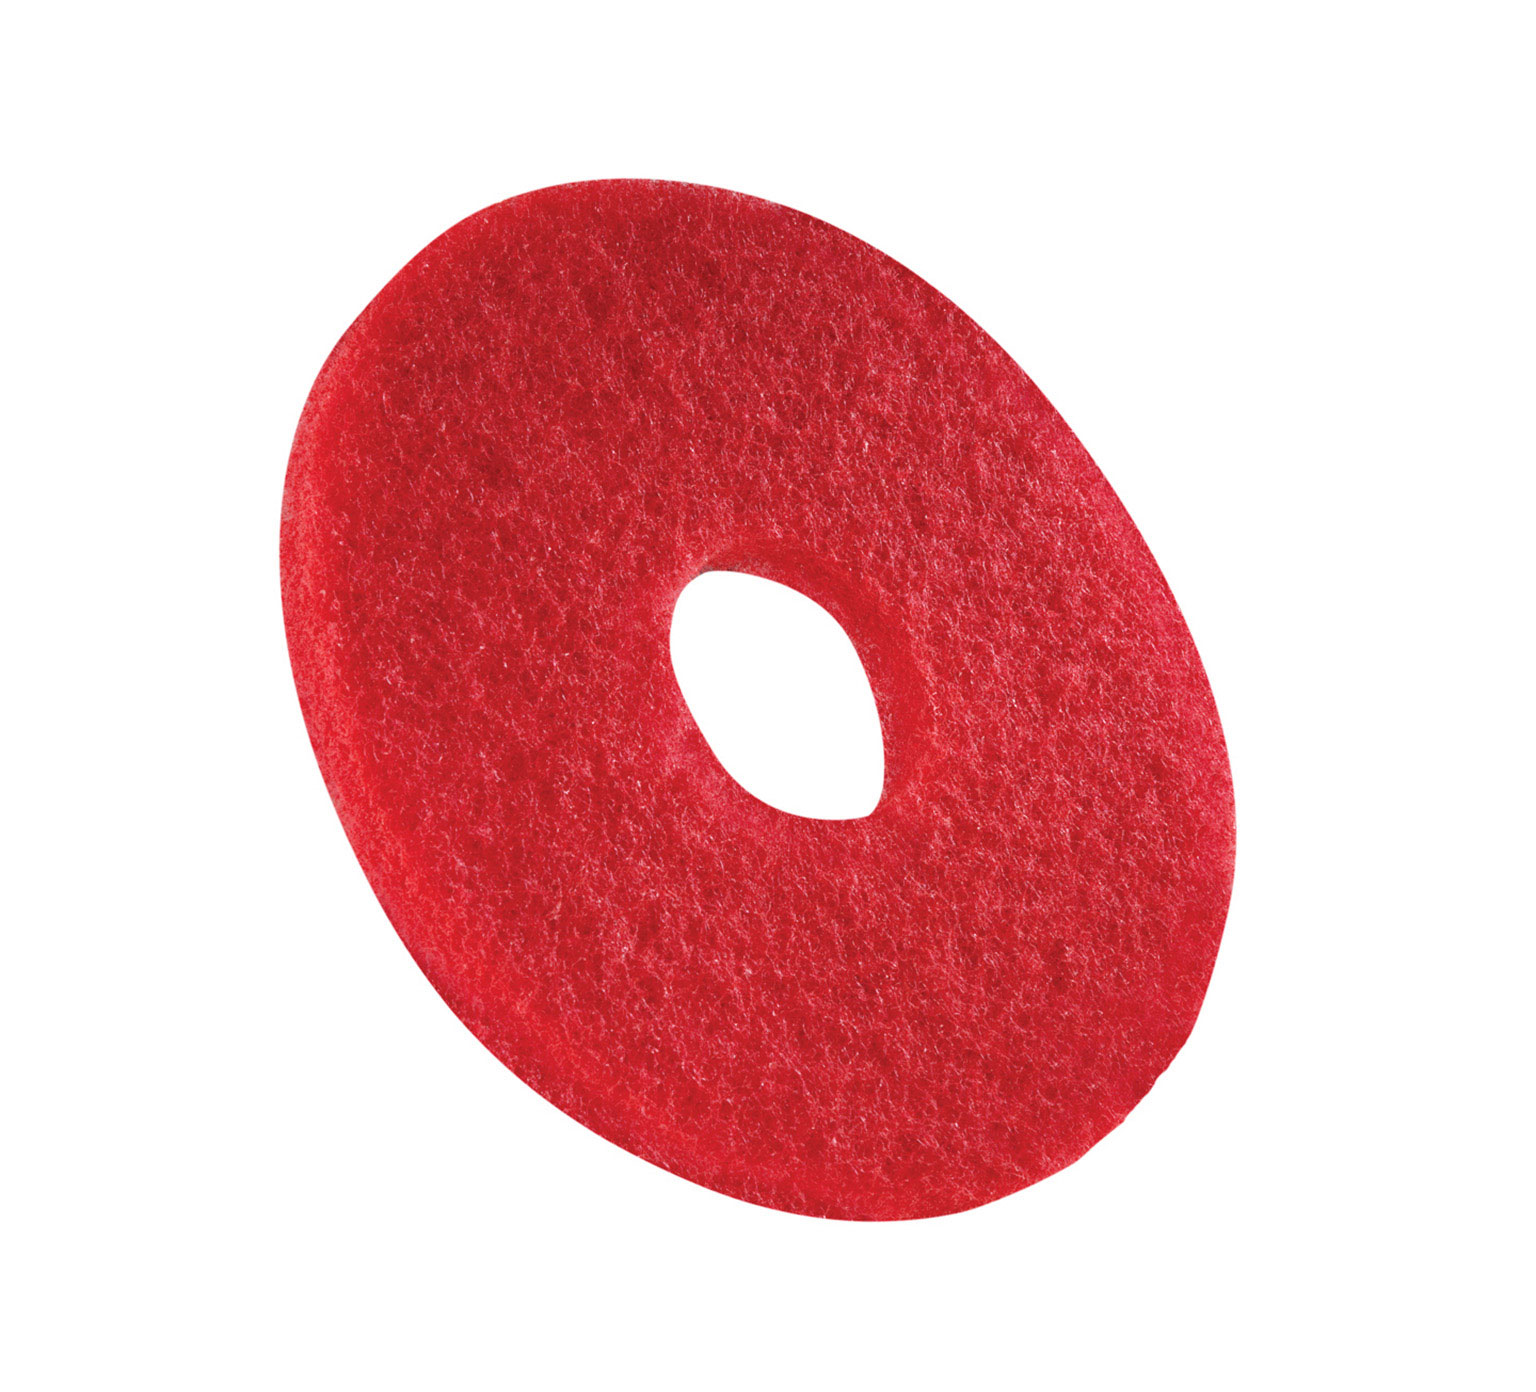 385941 3M Red Buffing Pad – 12 in / 304.8 mm alt 1